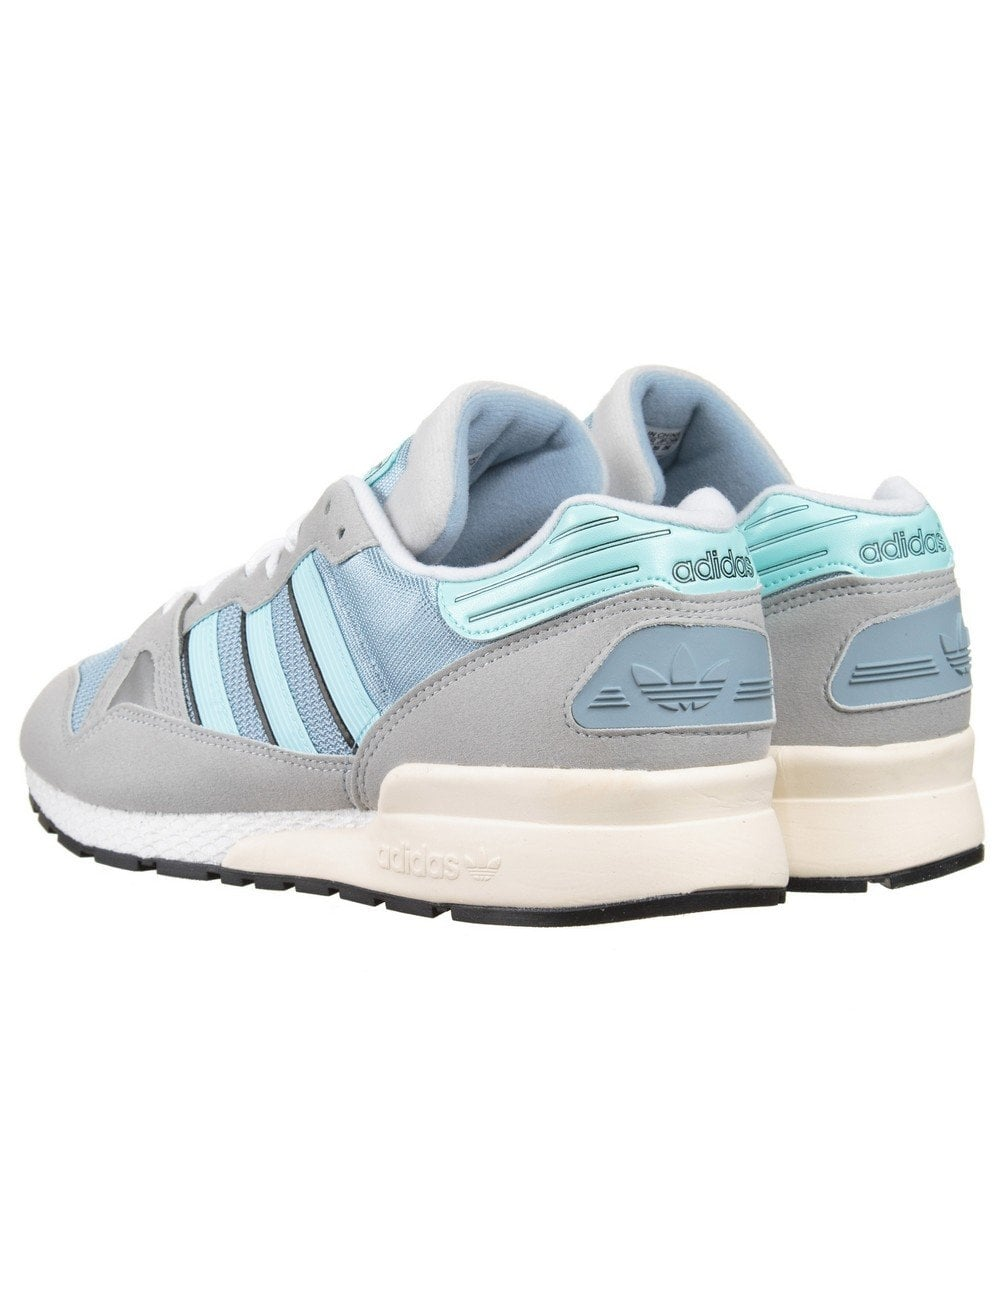 70d89c0d2ccbb Adidas Originals ZX 710 Shoes - Clear Onix Clear Aqua - Footwear ...